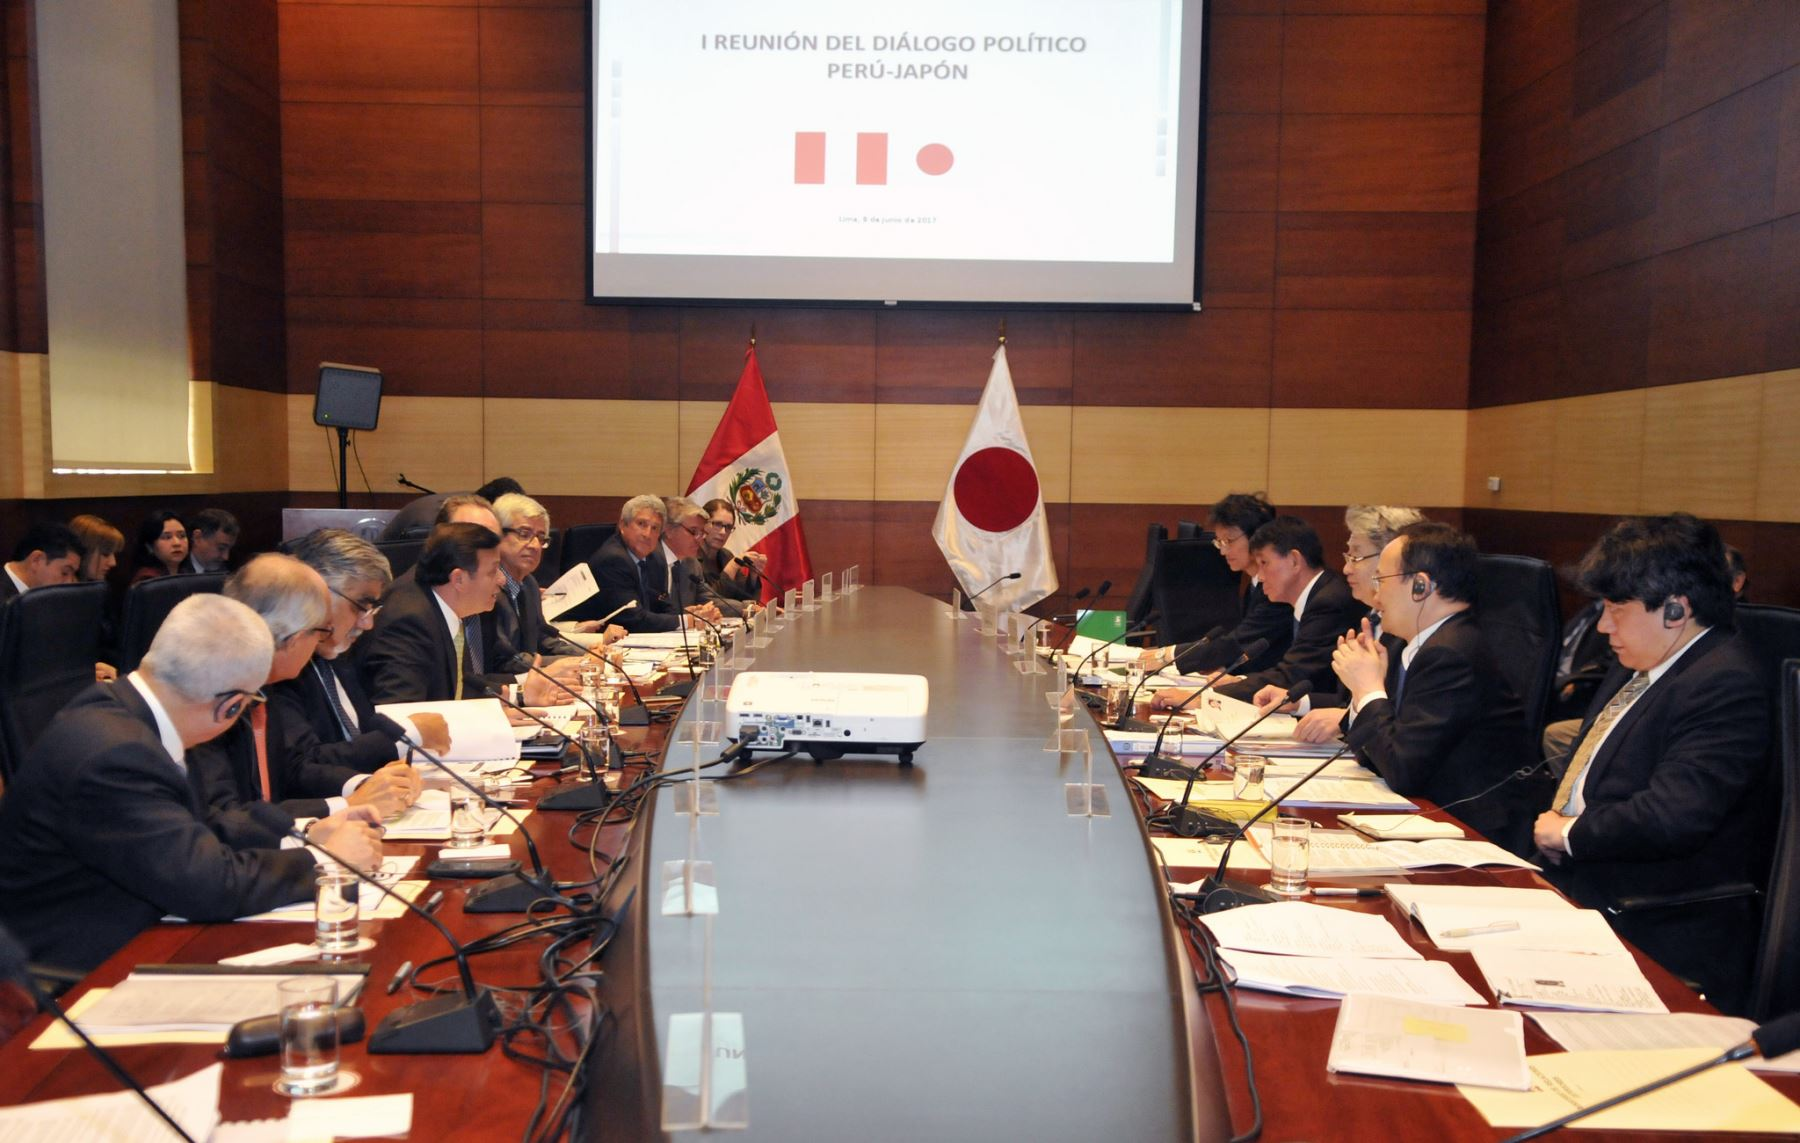 Peru, Japan reiterate will to boost integration and trade